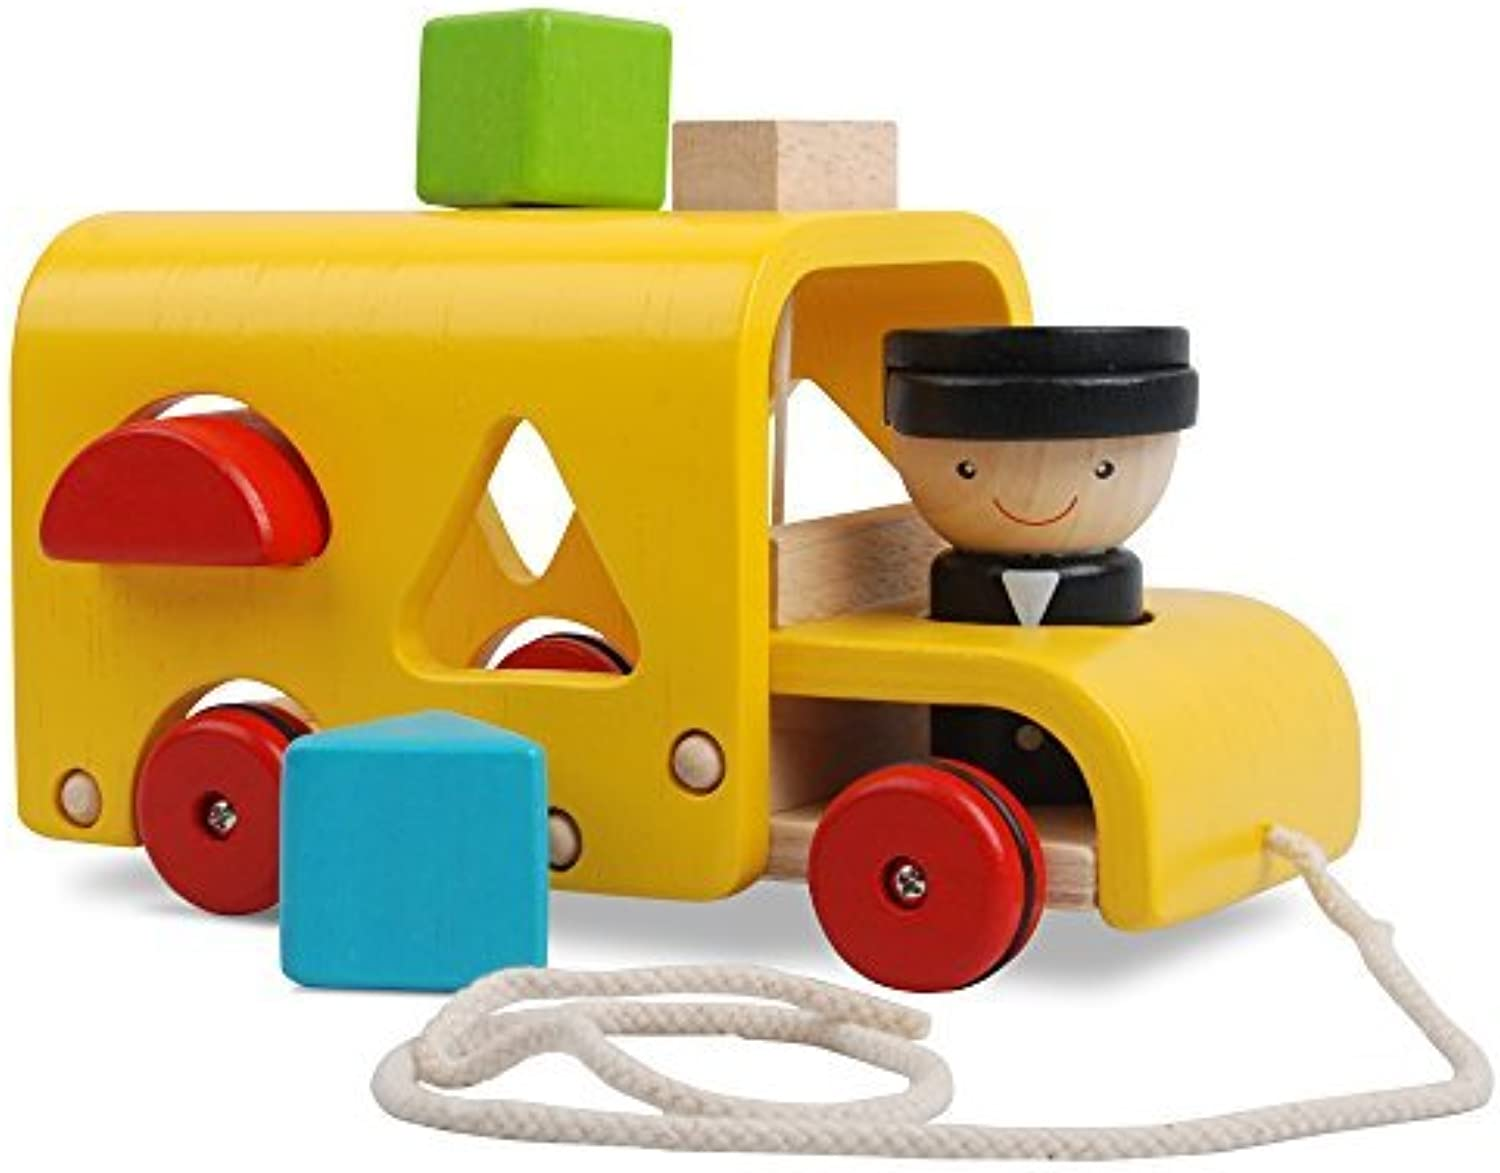 Plan Toys Sorting Bus by Plan Toys